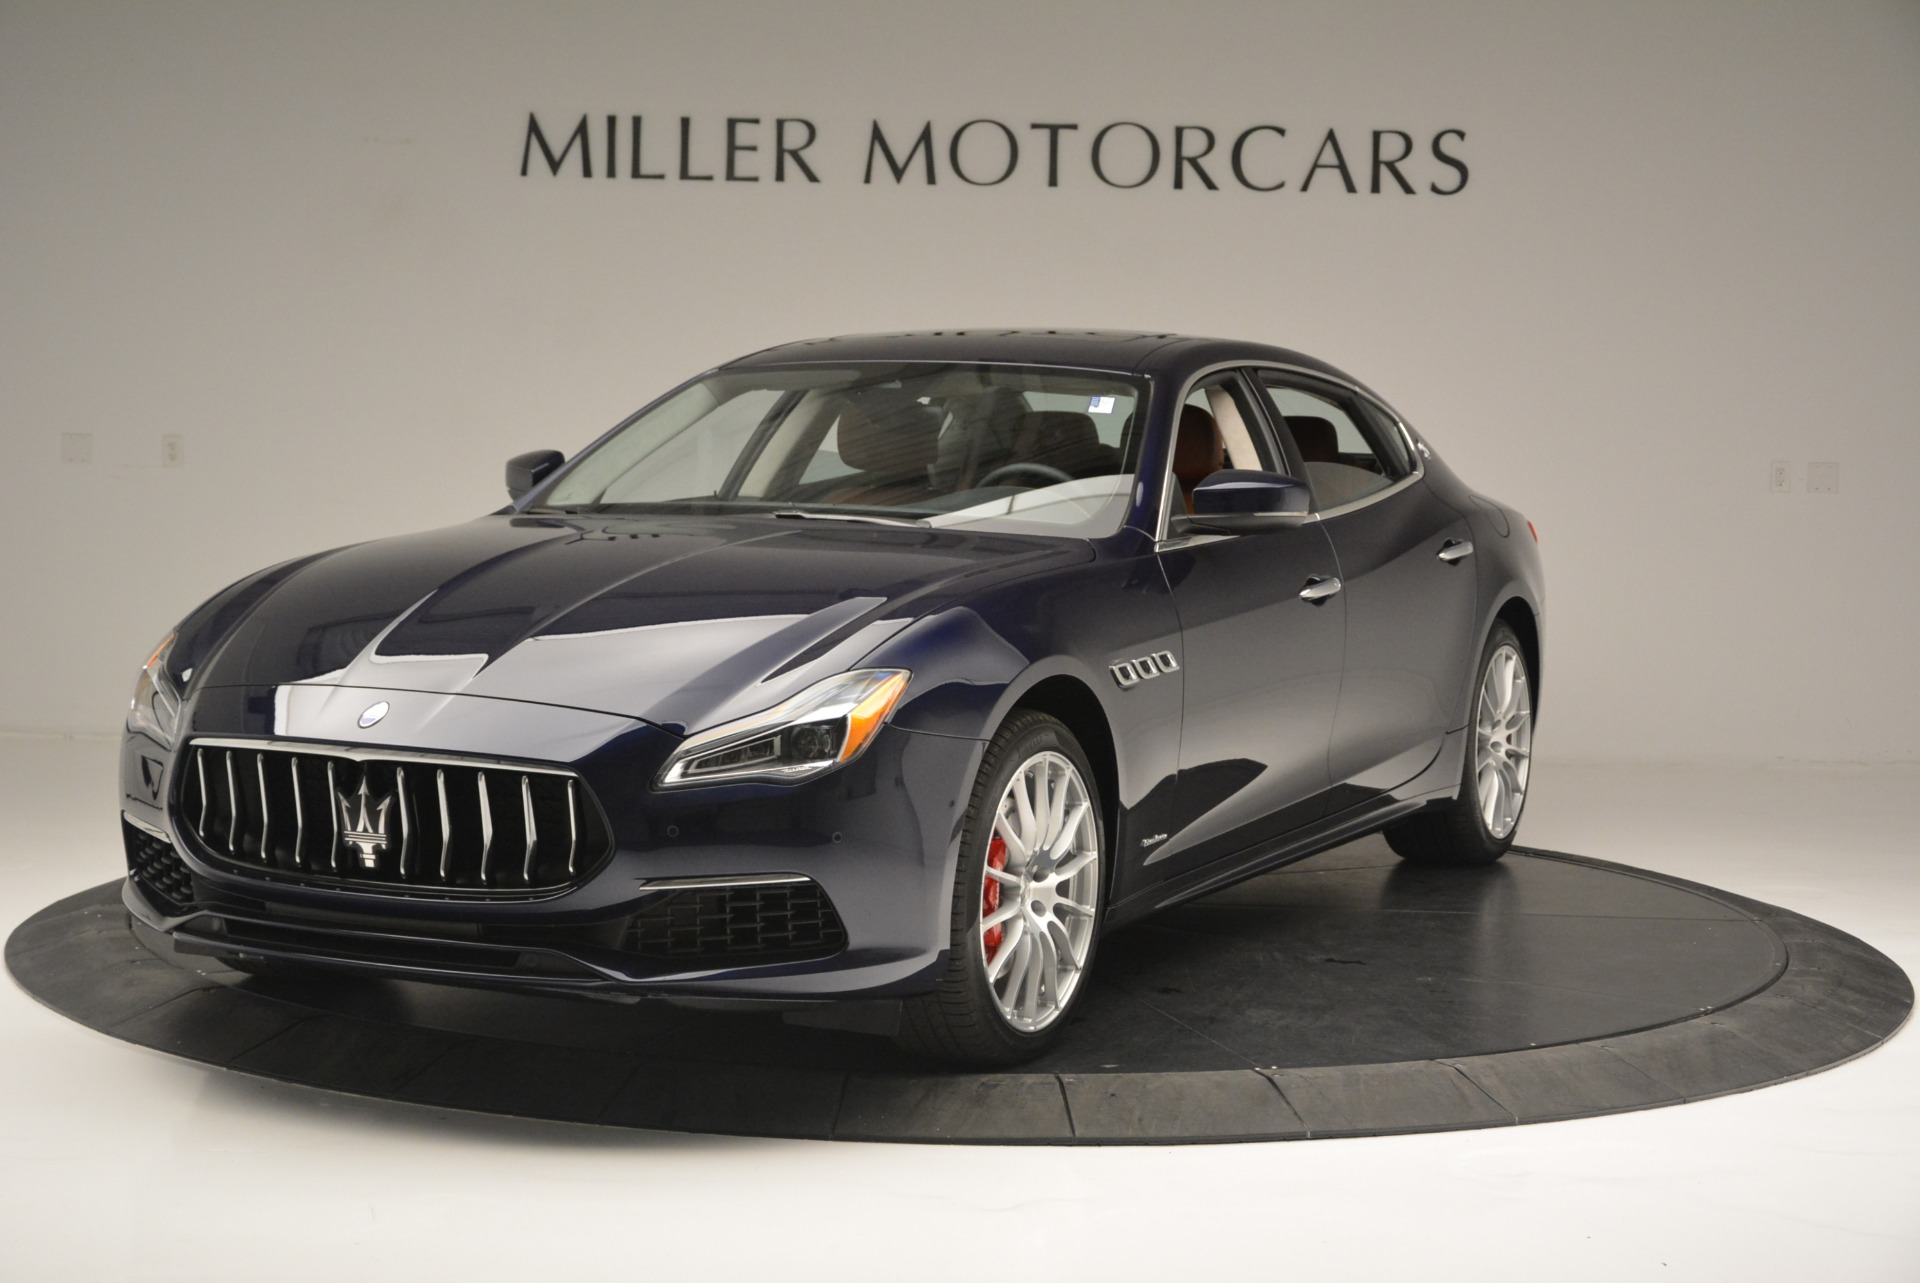 New 2018 Maserati Quattroporte S Q4 GranLusso For Sale In Greenwich, CT 1859_main